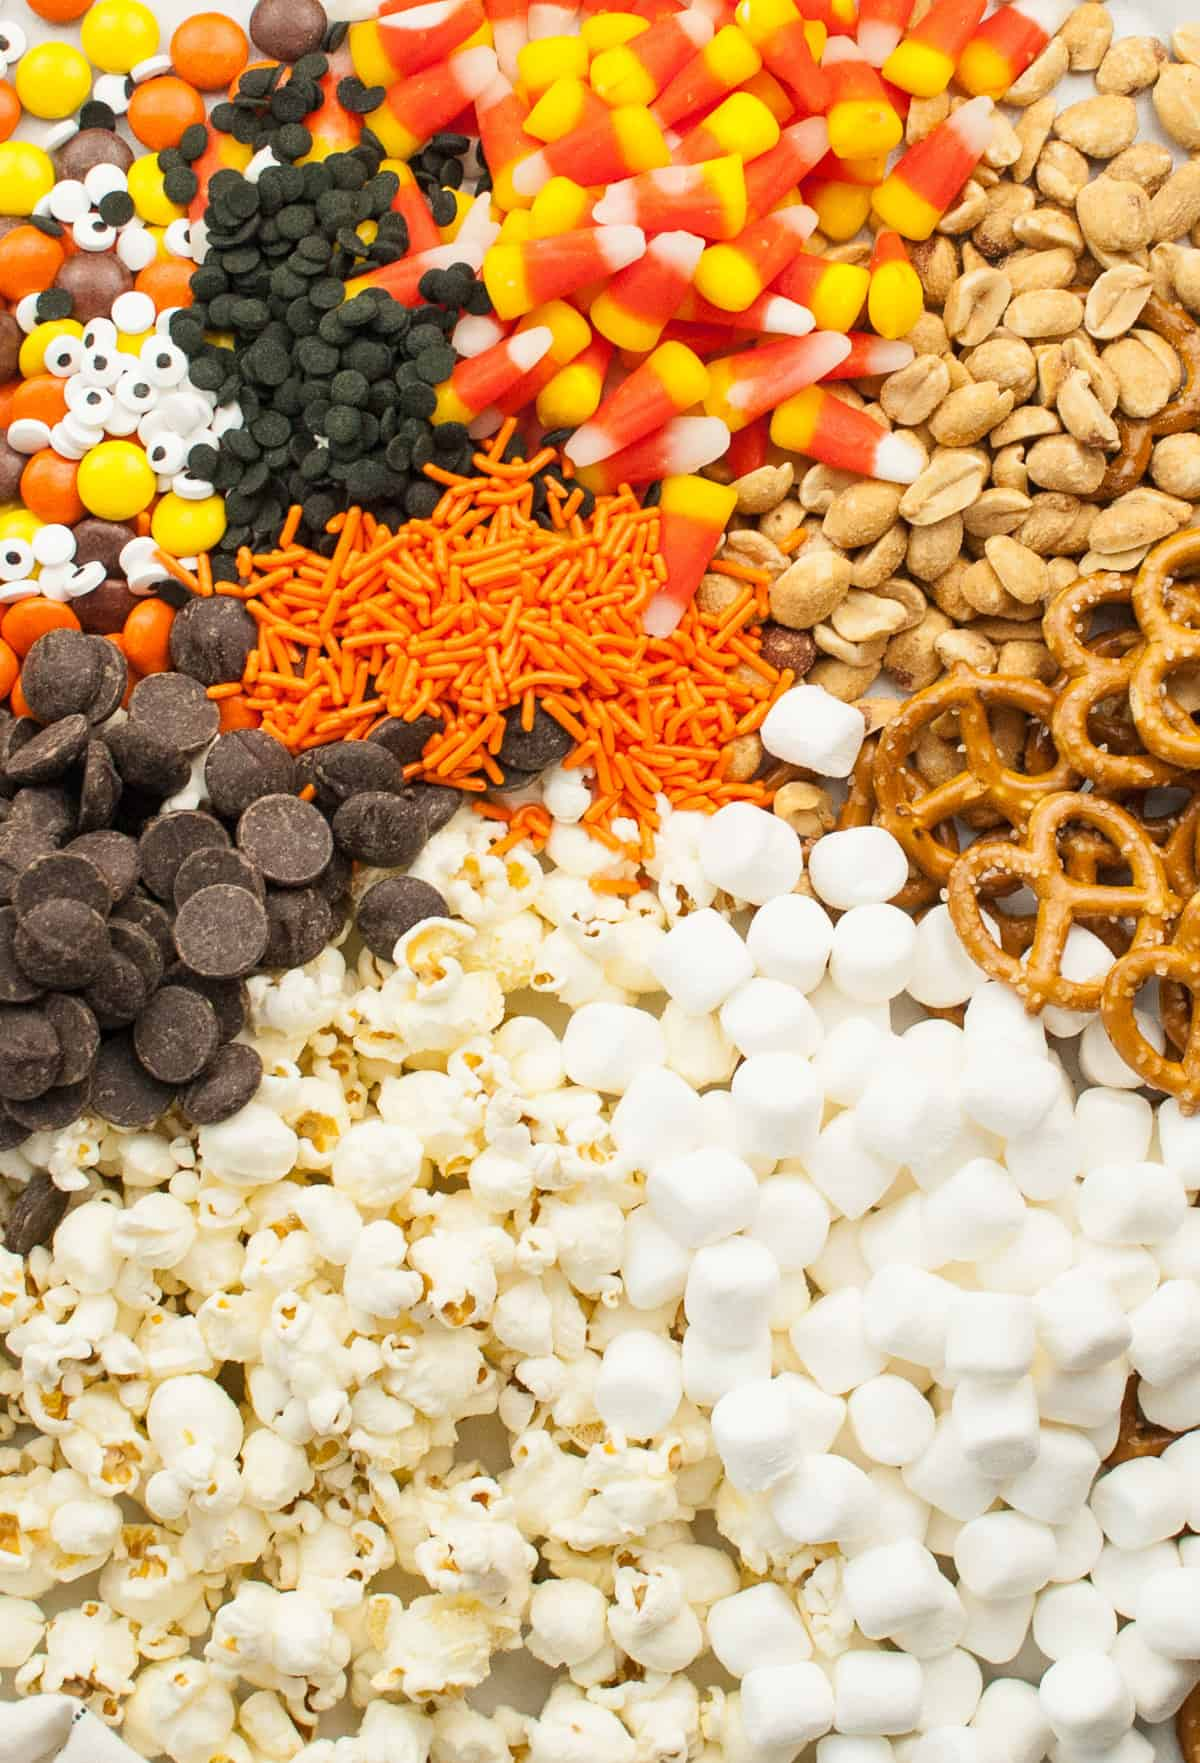 Clockwise from top: candy corn, peanuts, pretzels, marshmallows, popcorn, chocolate chips, and Halloween sprinkles.